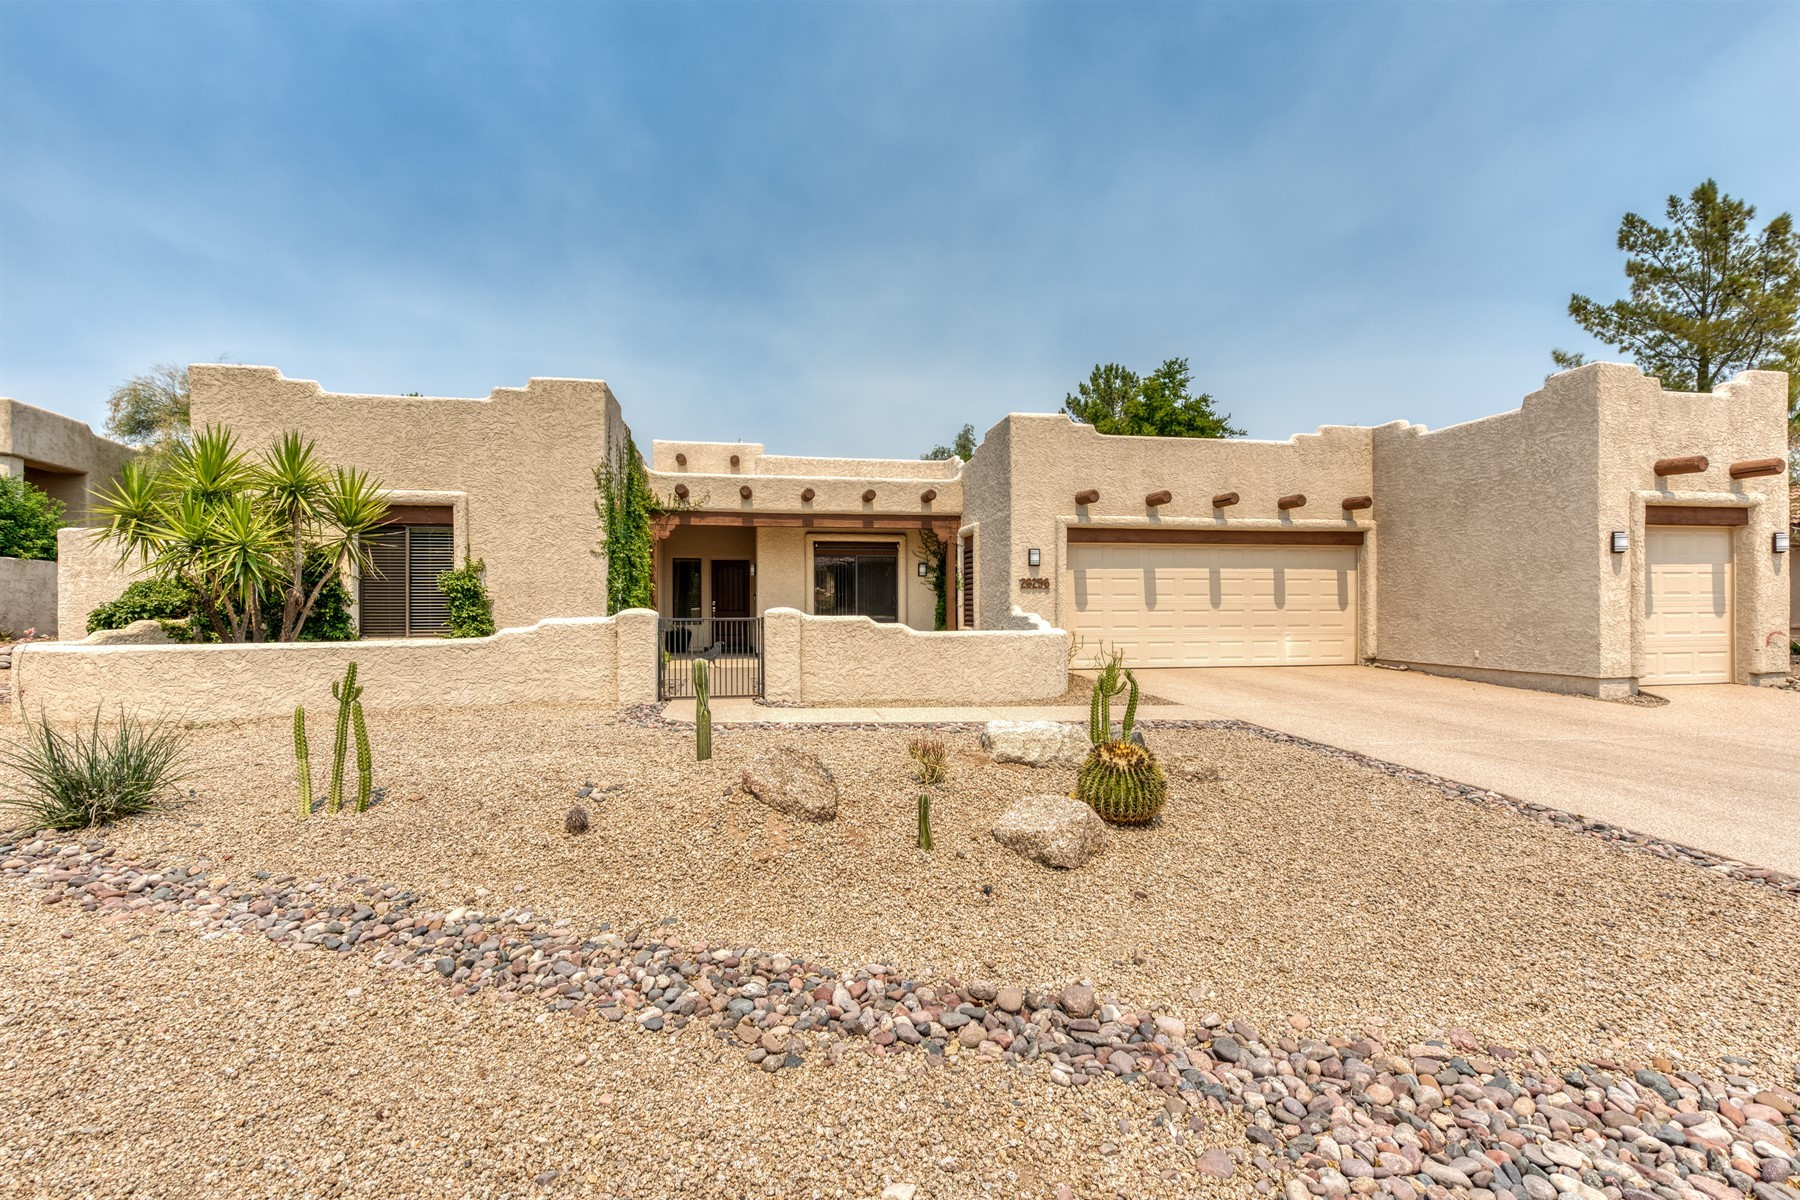 Single Family Homes for Sale at Chic Rio Verde Home 26256 N ARROYO WAY Rio Verde, Arizona 85263 United States